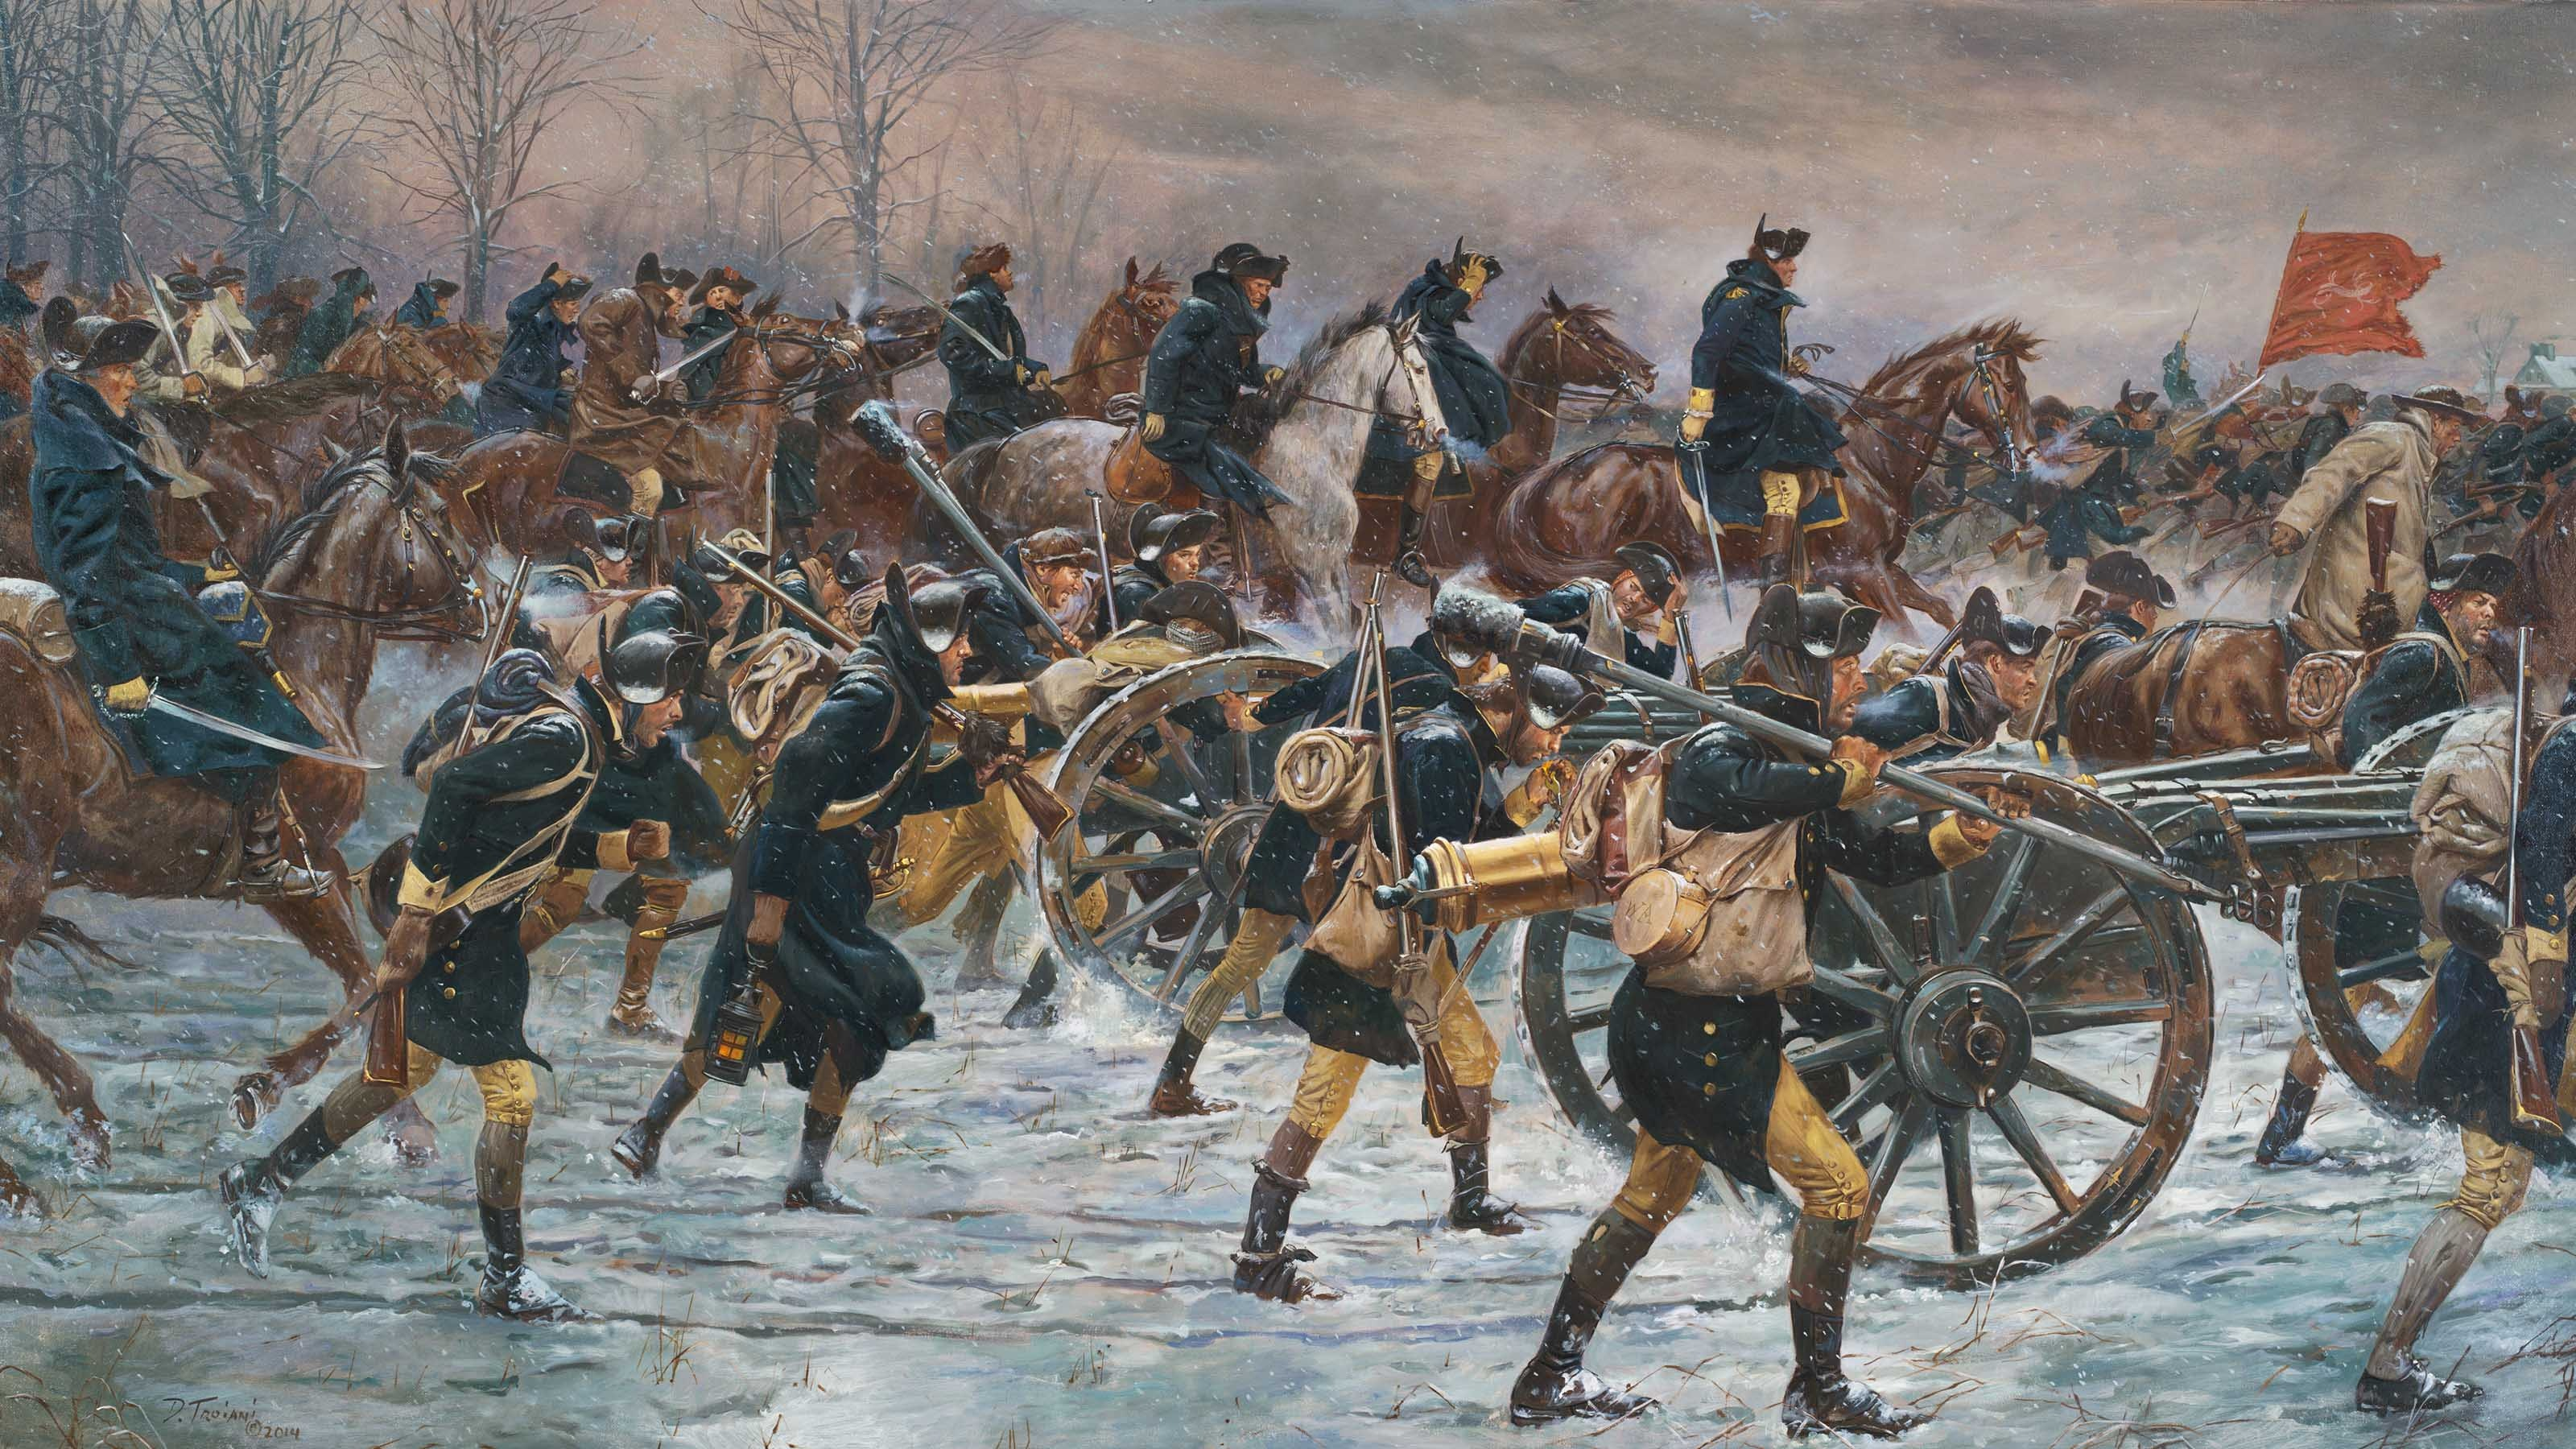 Liberty: Don Troiani's Paintings of the Revolutionary War - Museum of the American Revolution